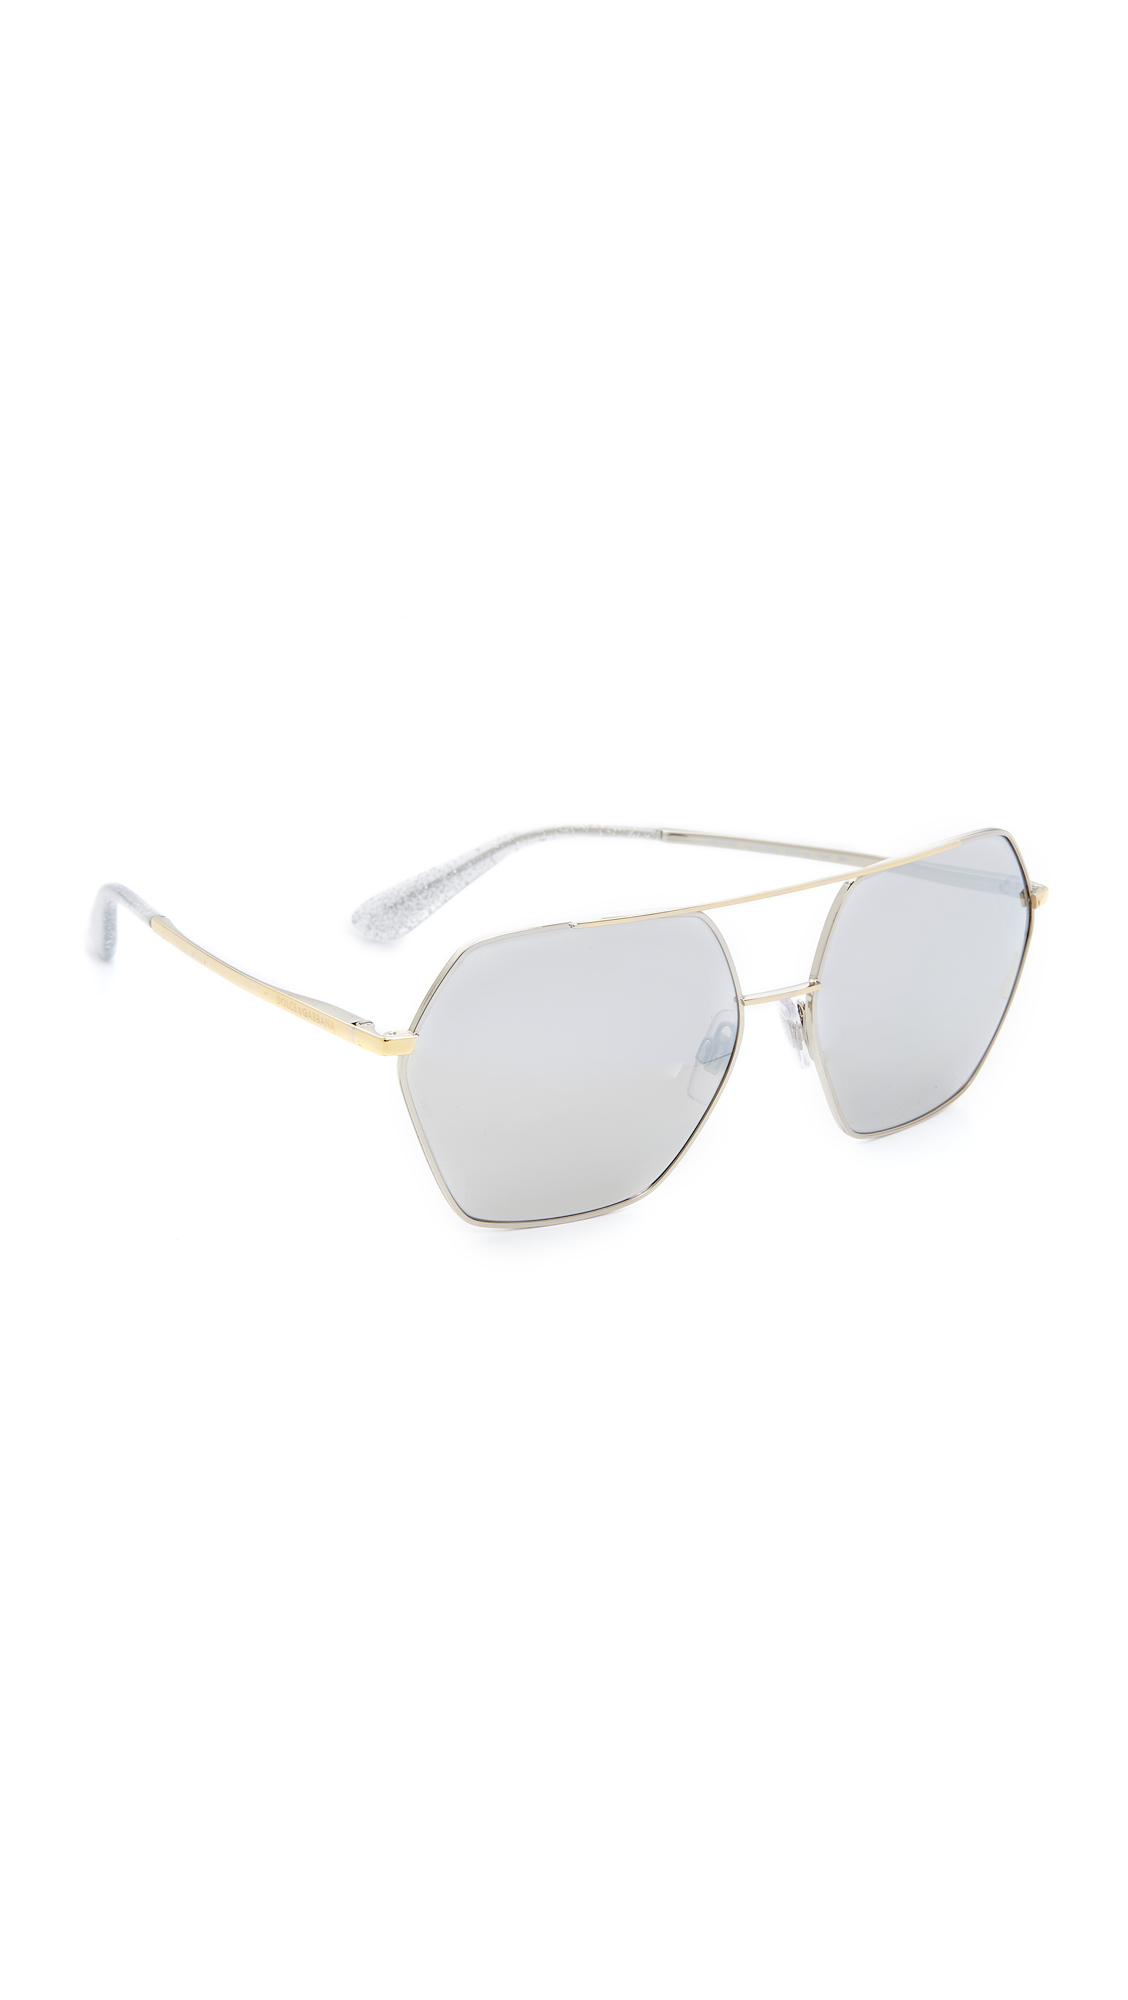 Dolce & Gabbana Mirrored Aviator Sunglasses - Silver Gold/Gold at Shopbop